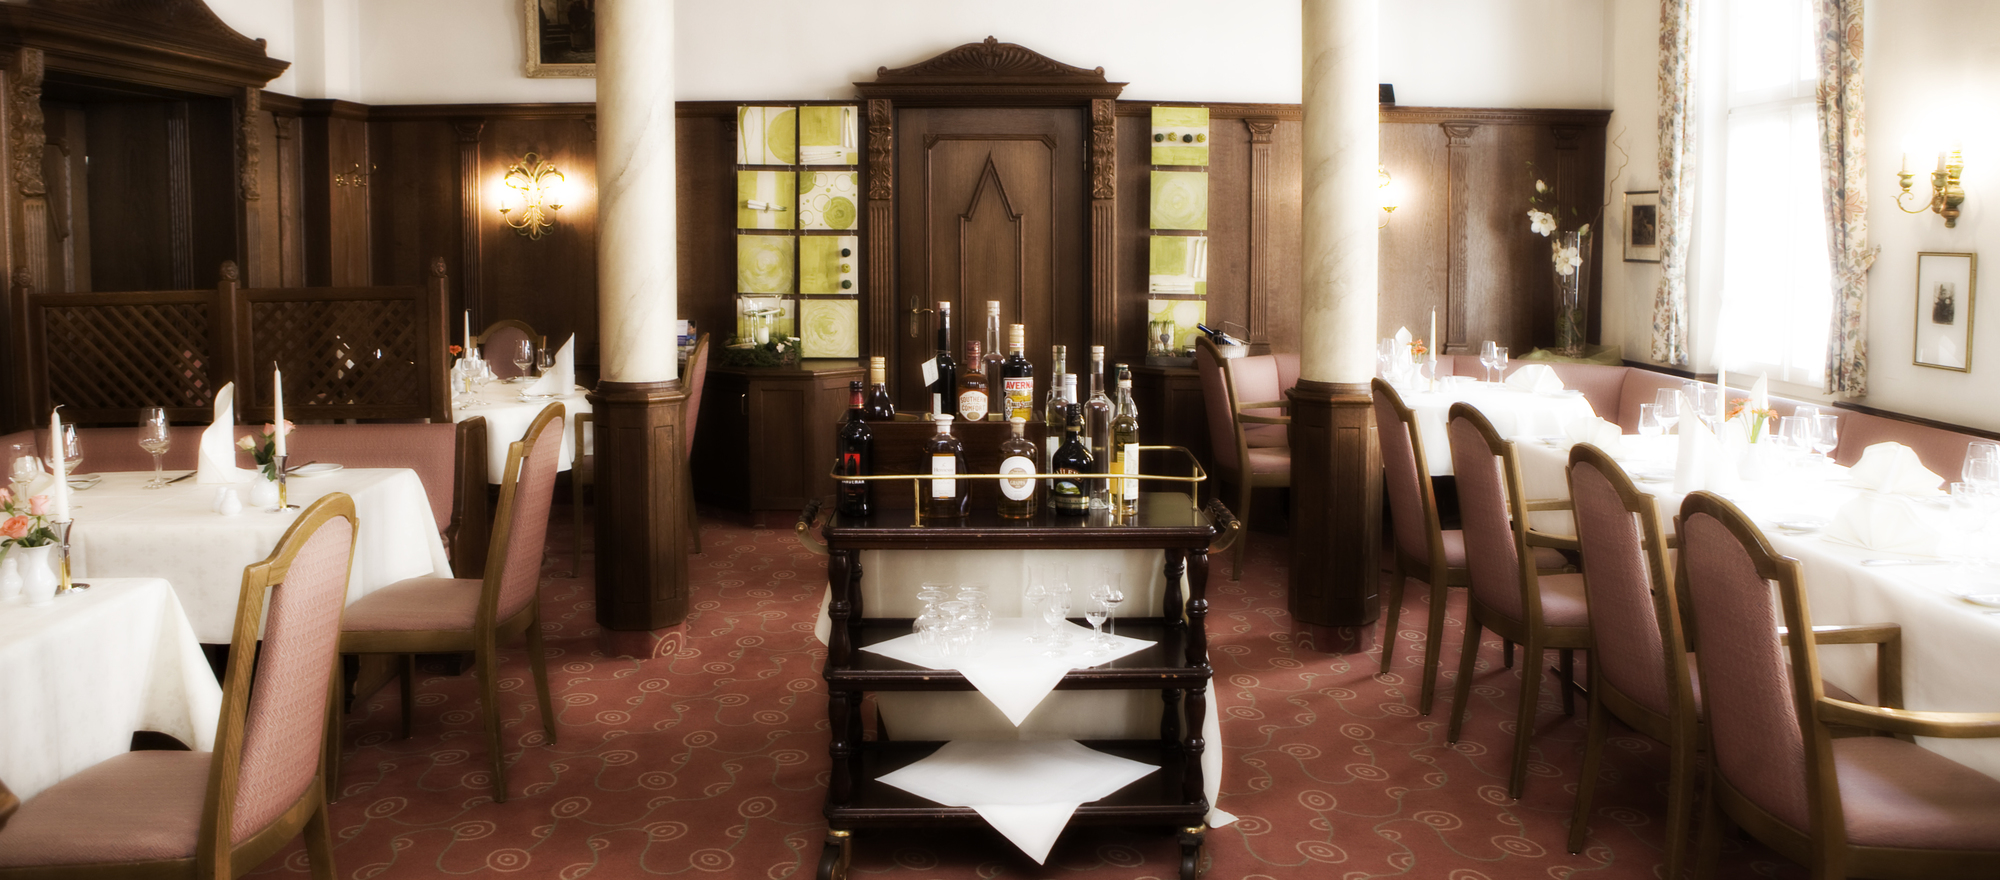 Enjoy the culinary delights from regional specialties in the 4-star hotel Ringhotel Nassau-Oranien in Limburg/Hadamar